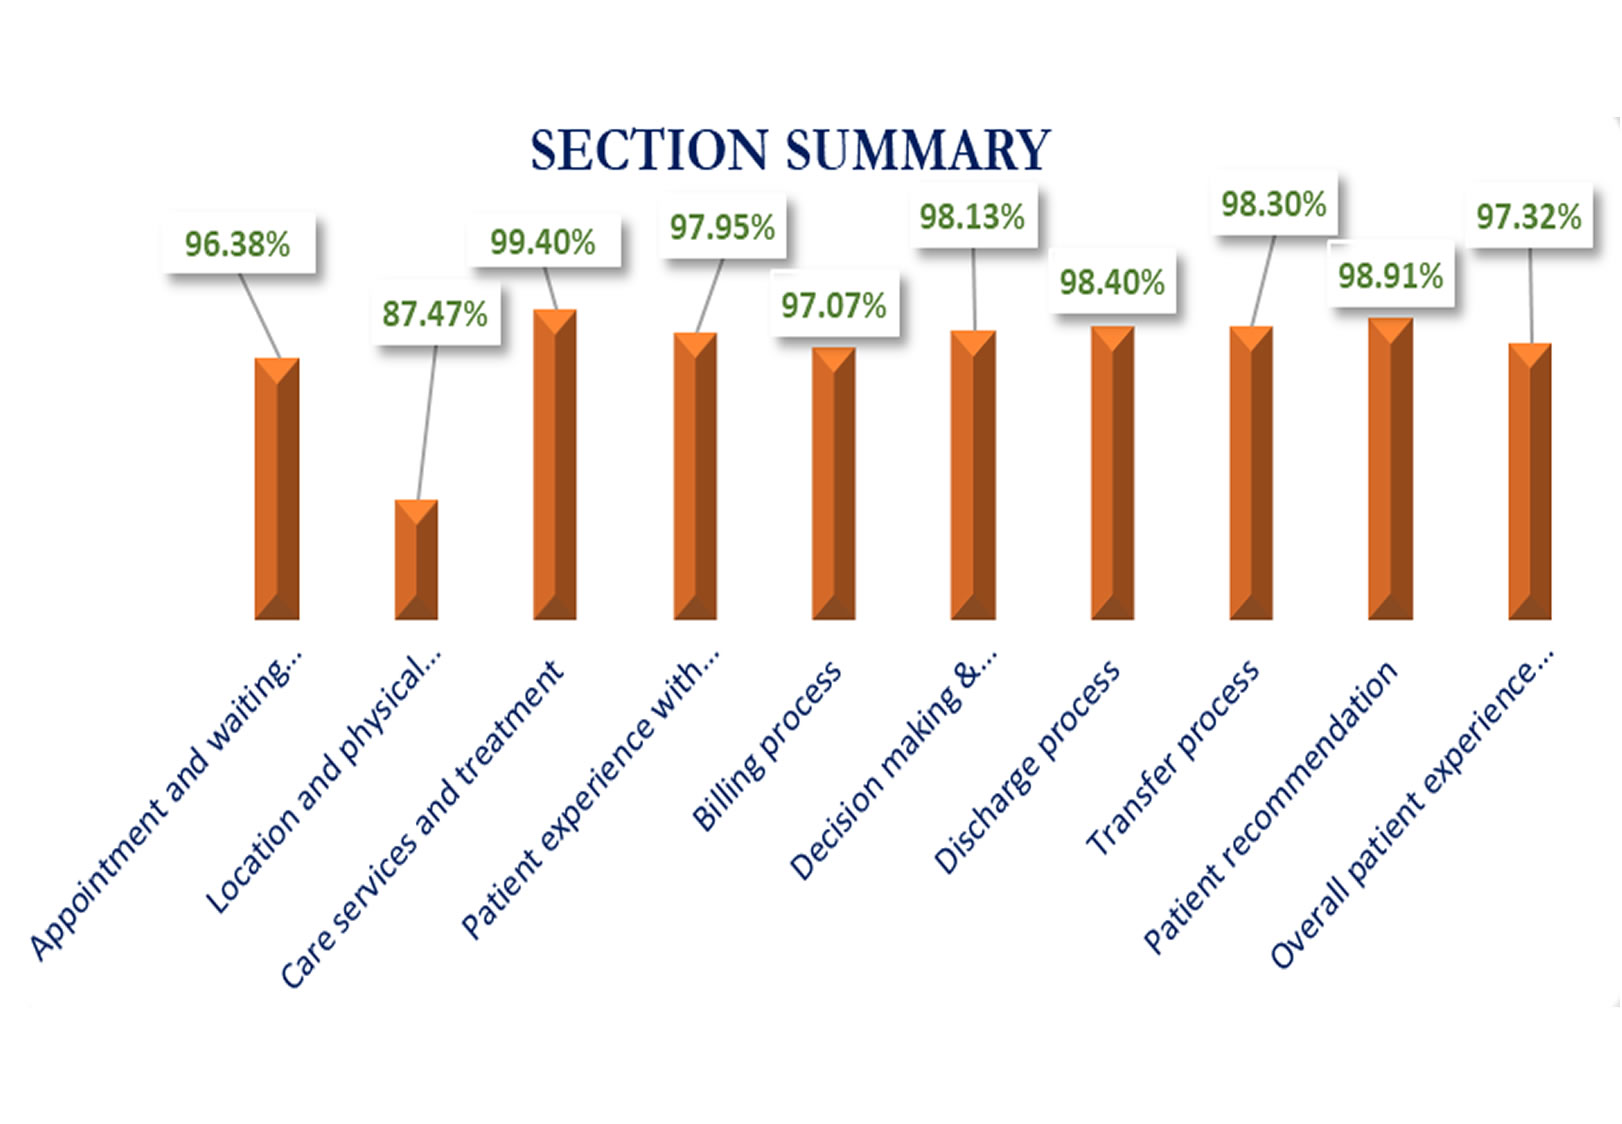 Section Summary - October to December 2019 Survey